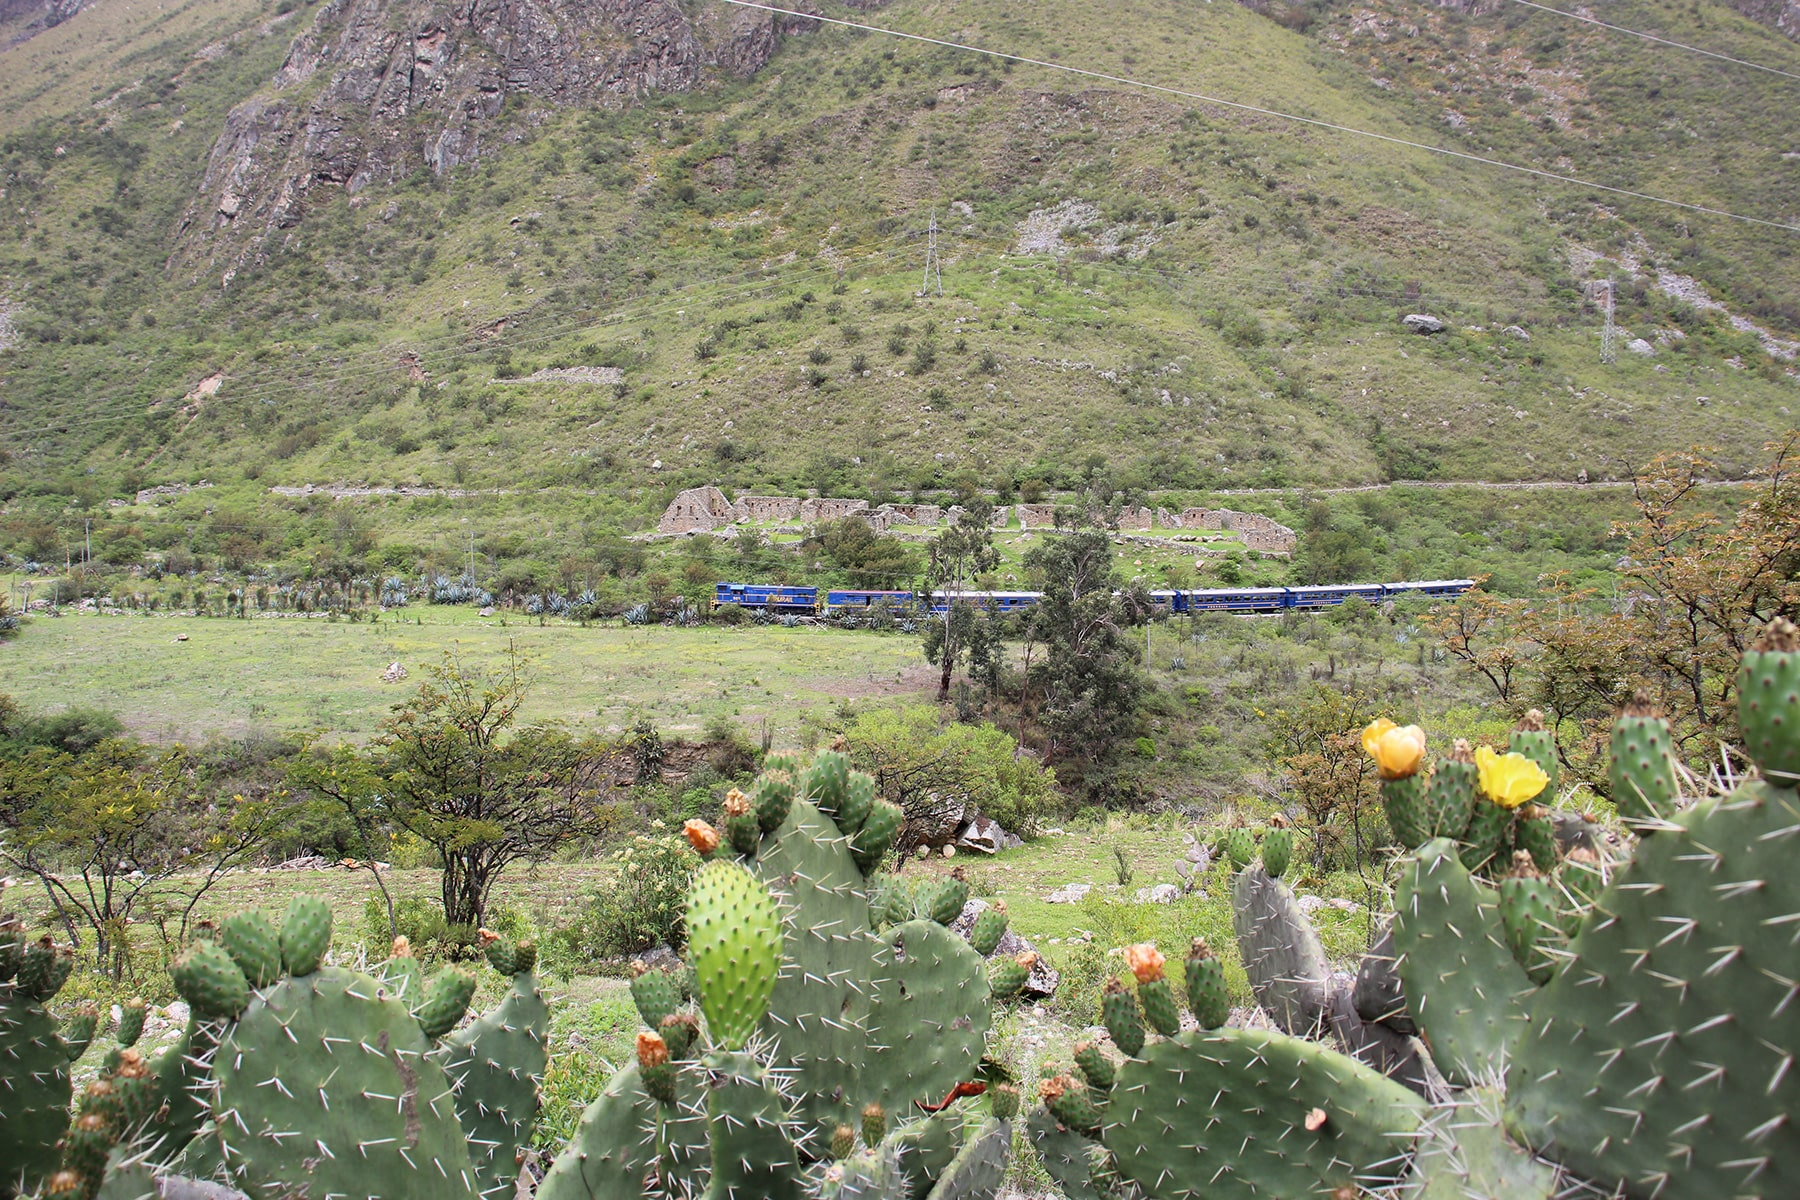 Train in the middle of the landscape with cactuses